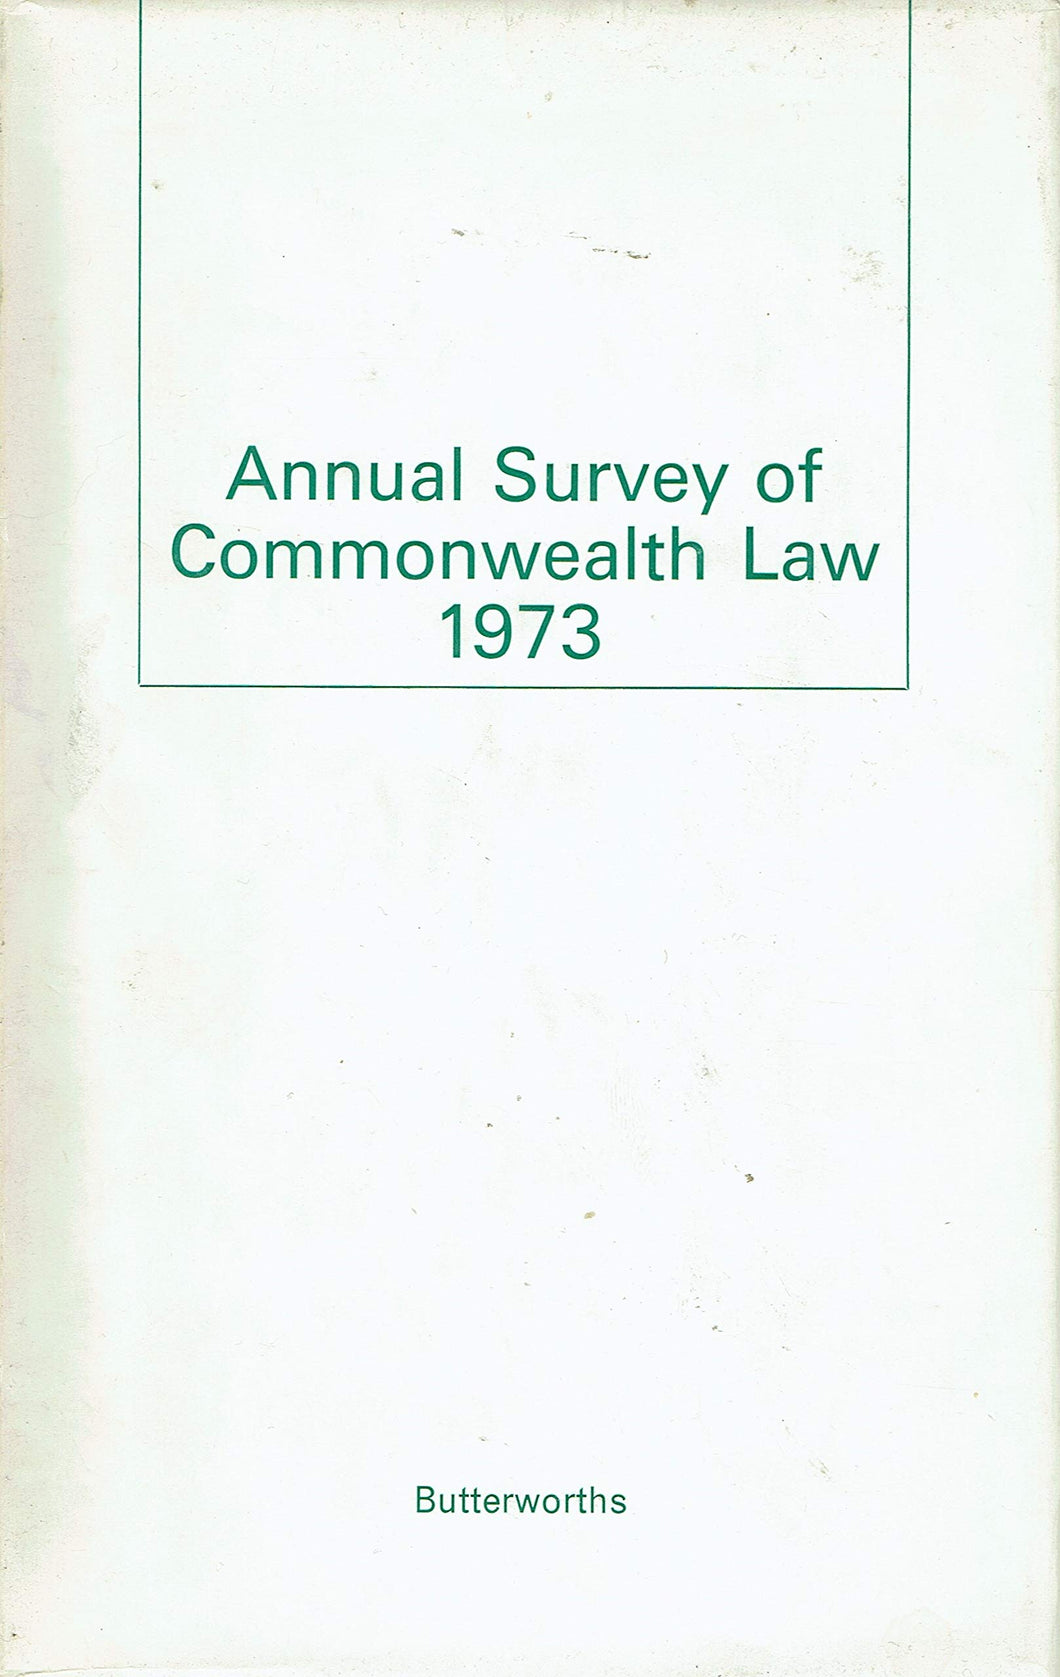 Annual Survey of Commonwealth Law 1972